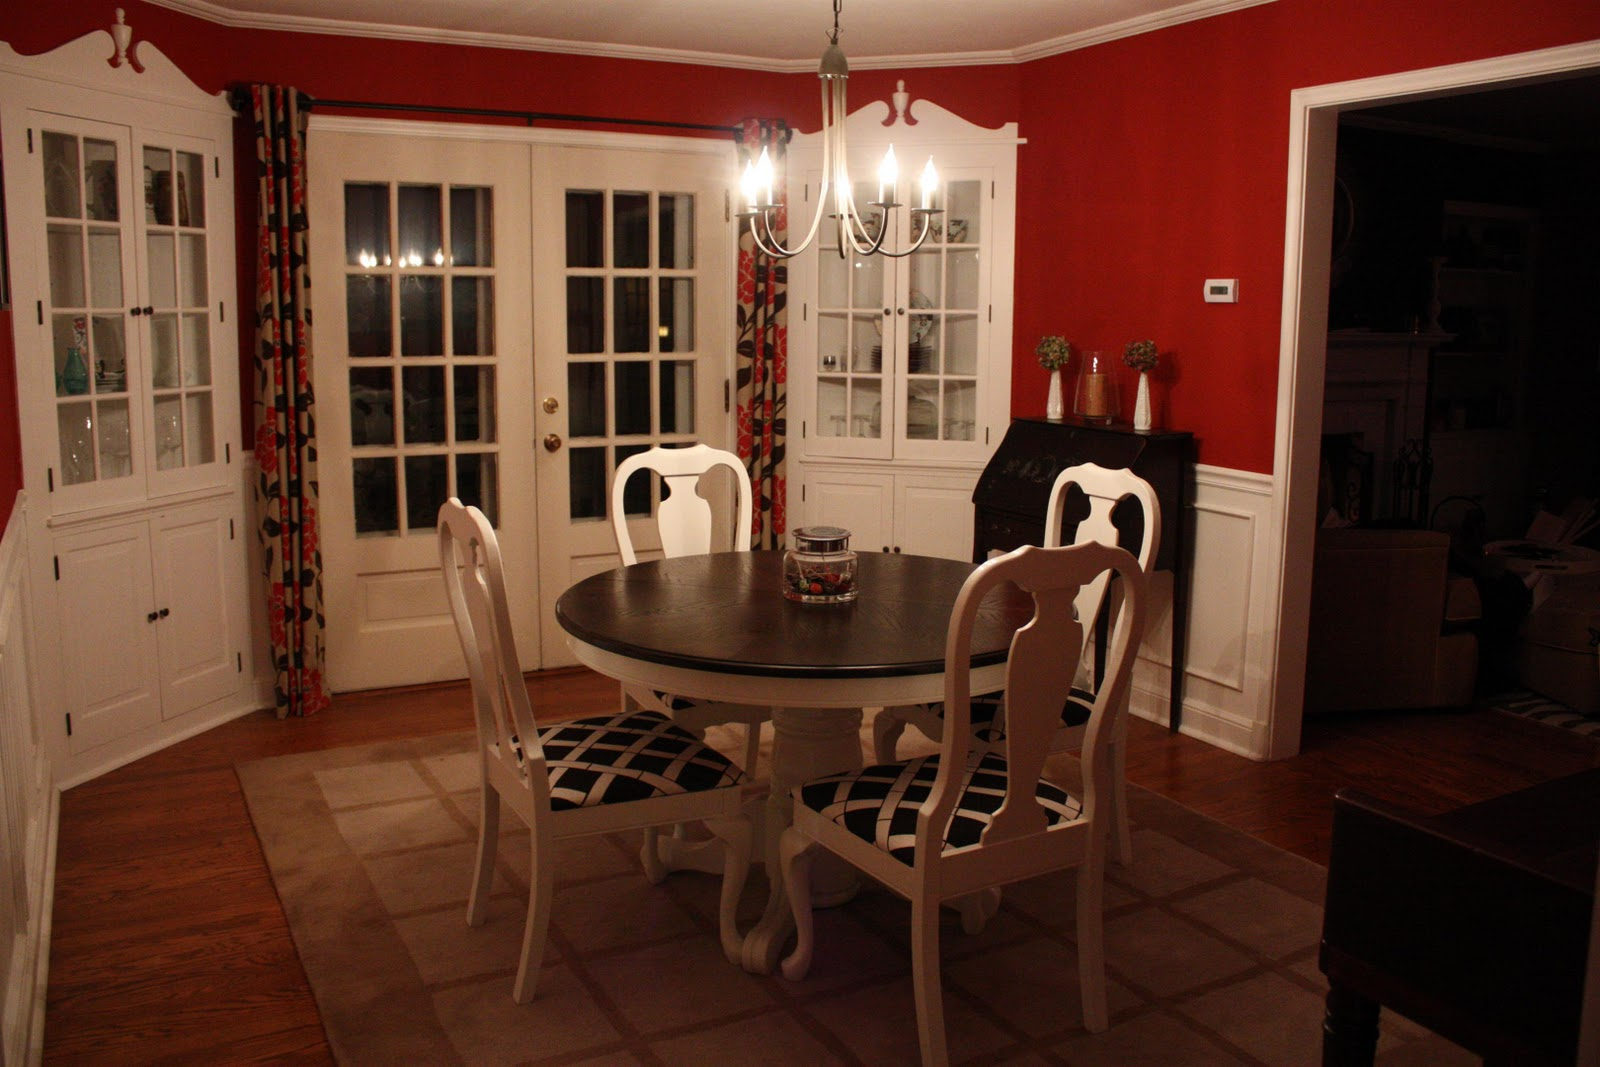 Kitchen Table Refinishing Russet Street Reno November 2010